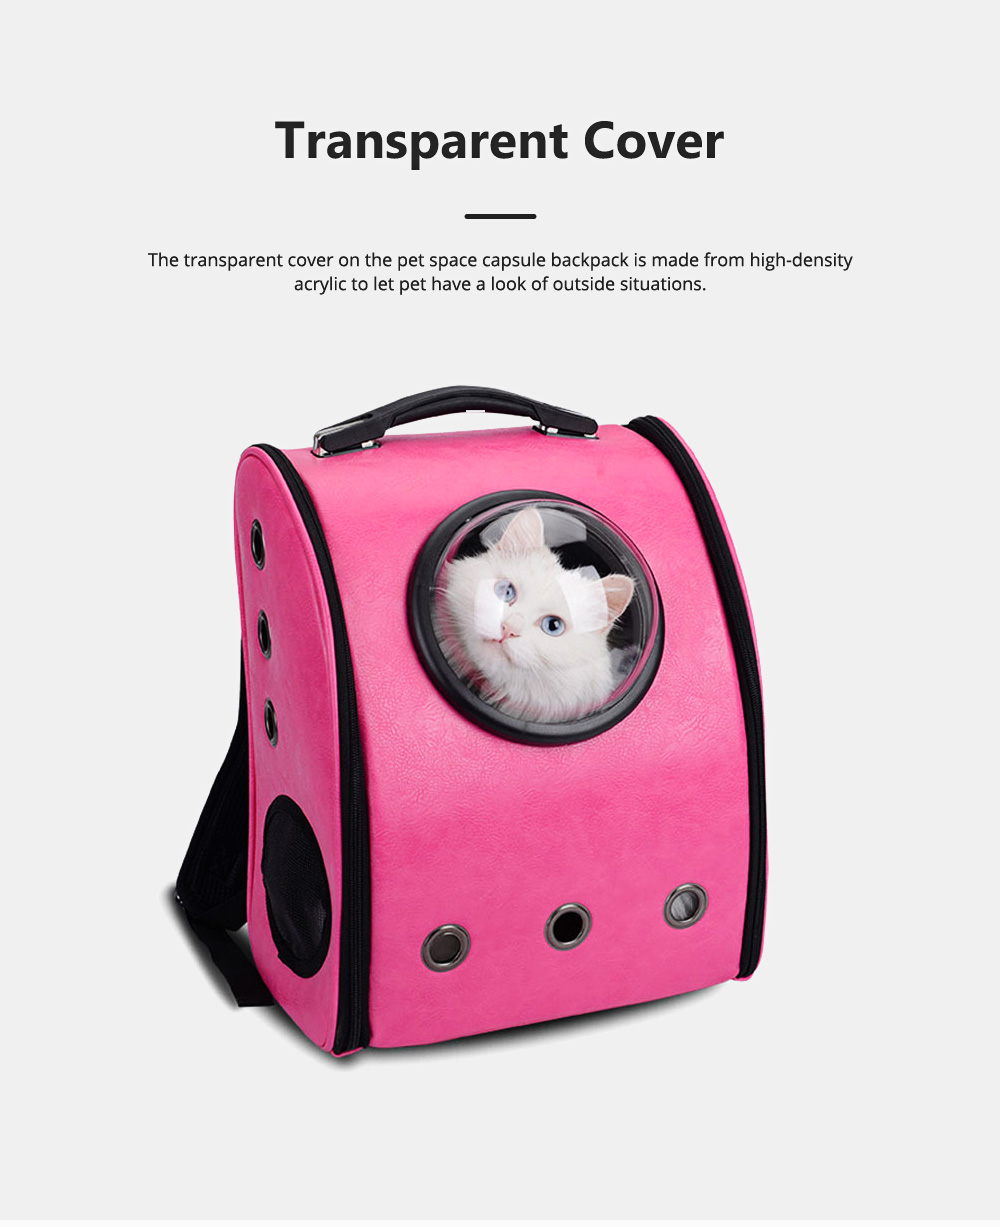 Pure Color Pet Space Capsule Backpack Nontoxic Breathable Knapsack for Dog Cat Going out Pet Products Packsack for Carrying Pet 5